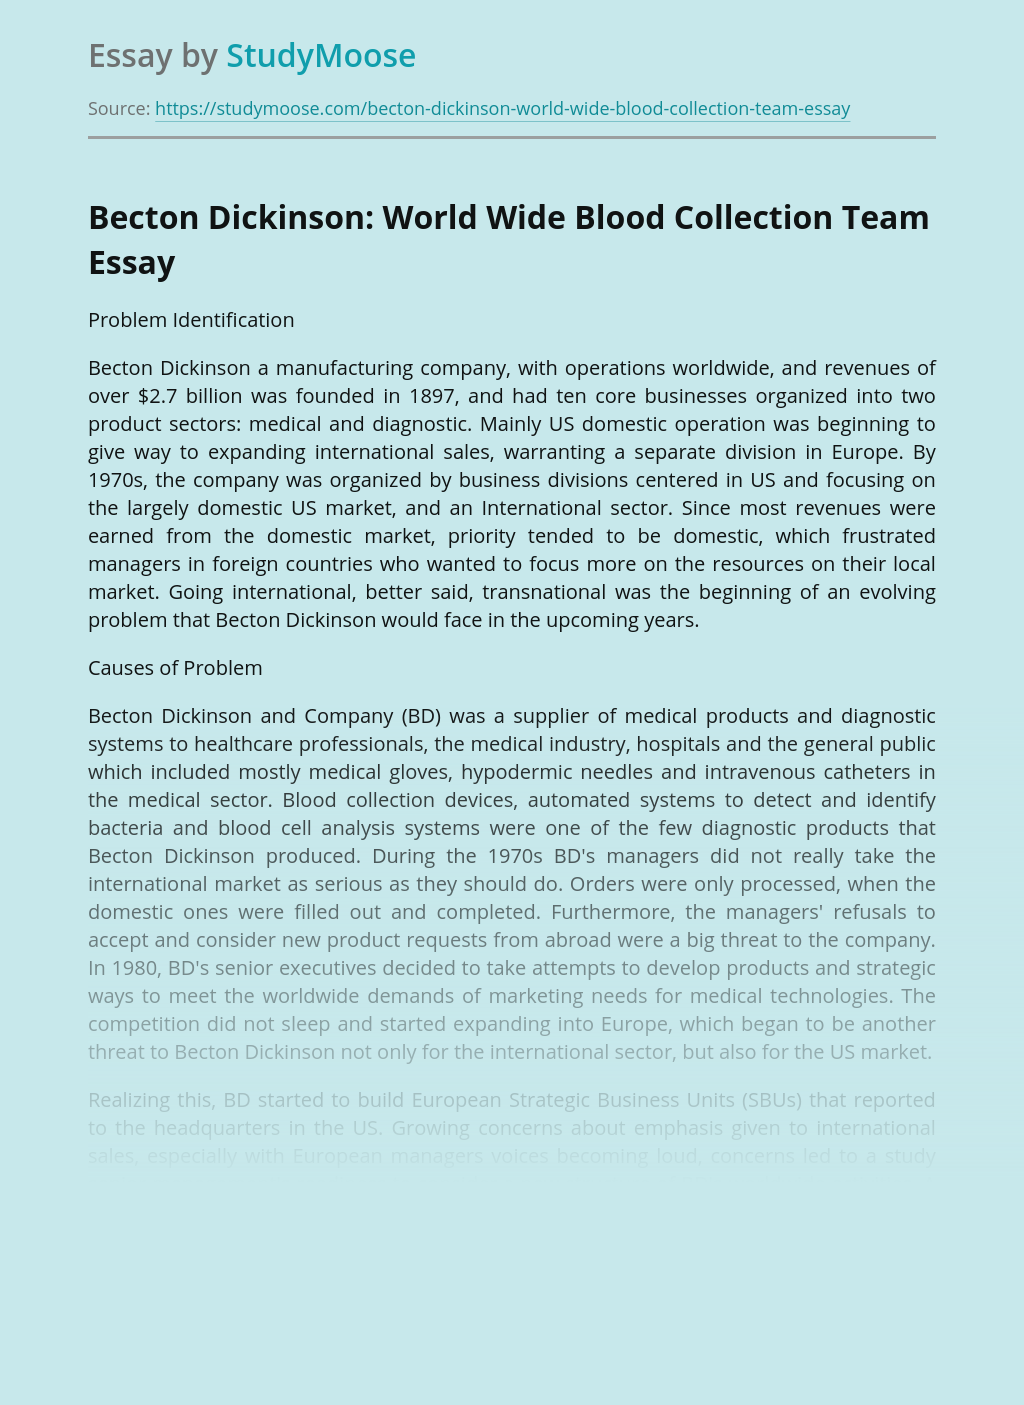 Becton Dickinson: World Wide Blood Collection Team